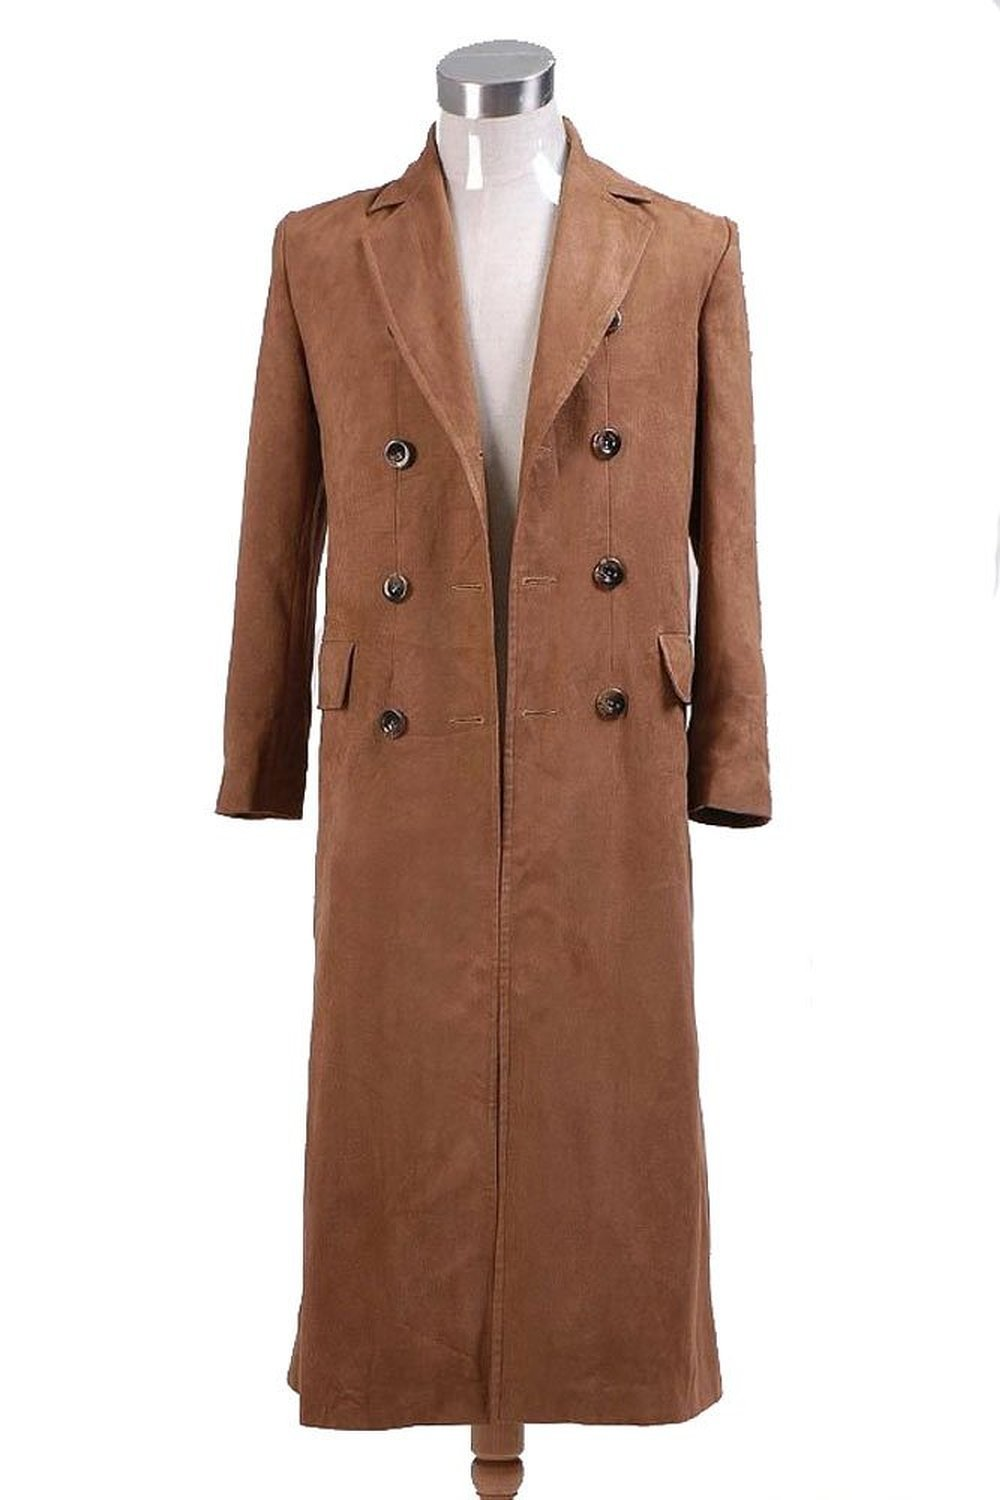 CosDaddy Brown Long Trench Coat (M-Man)